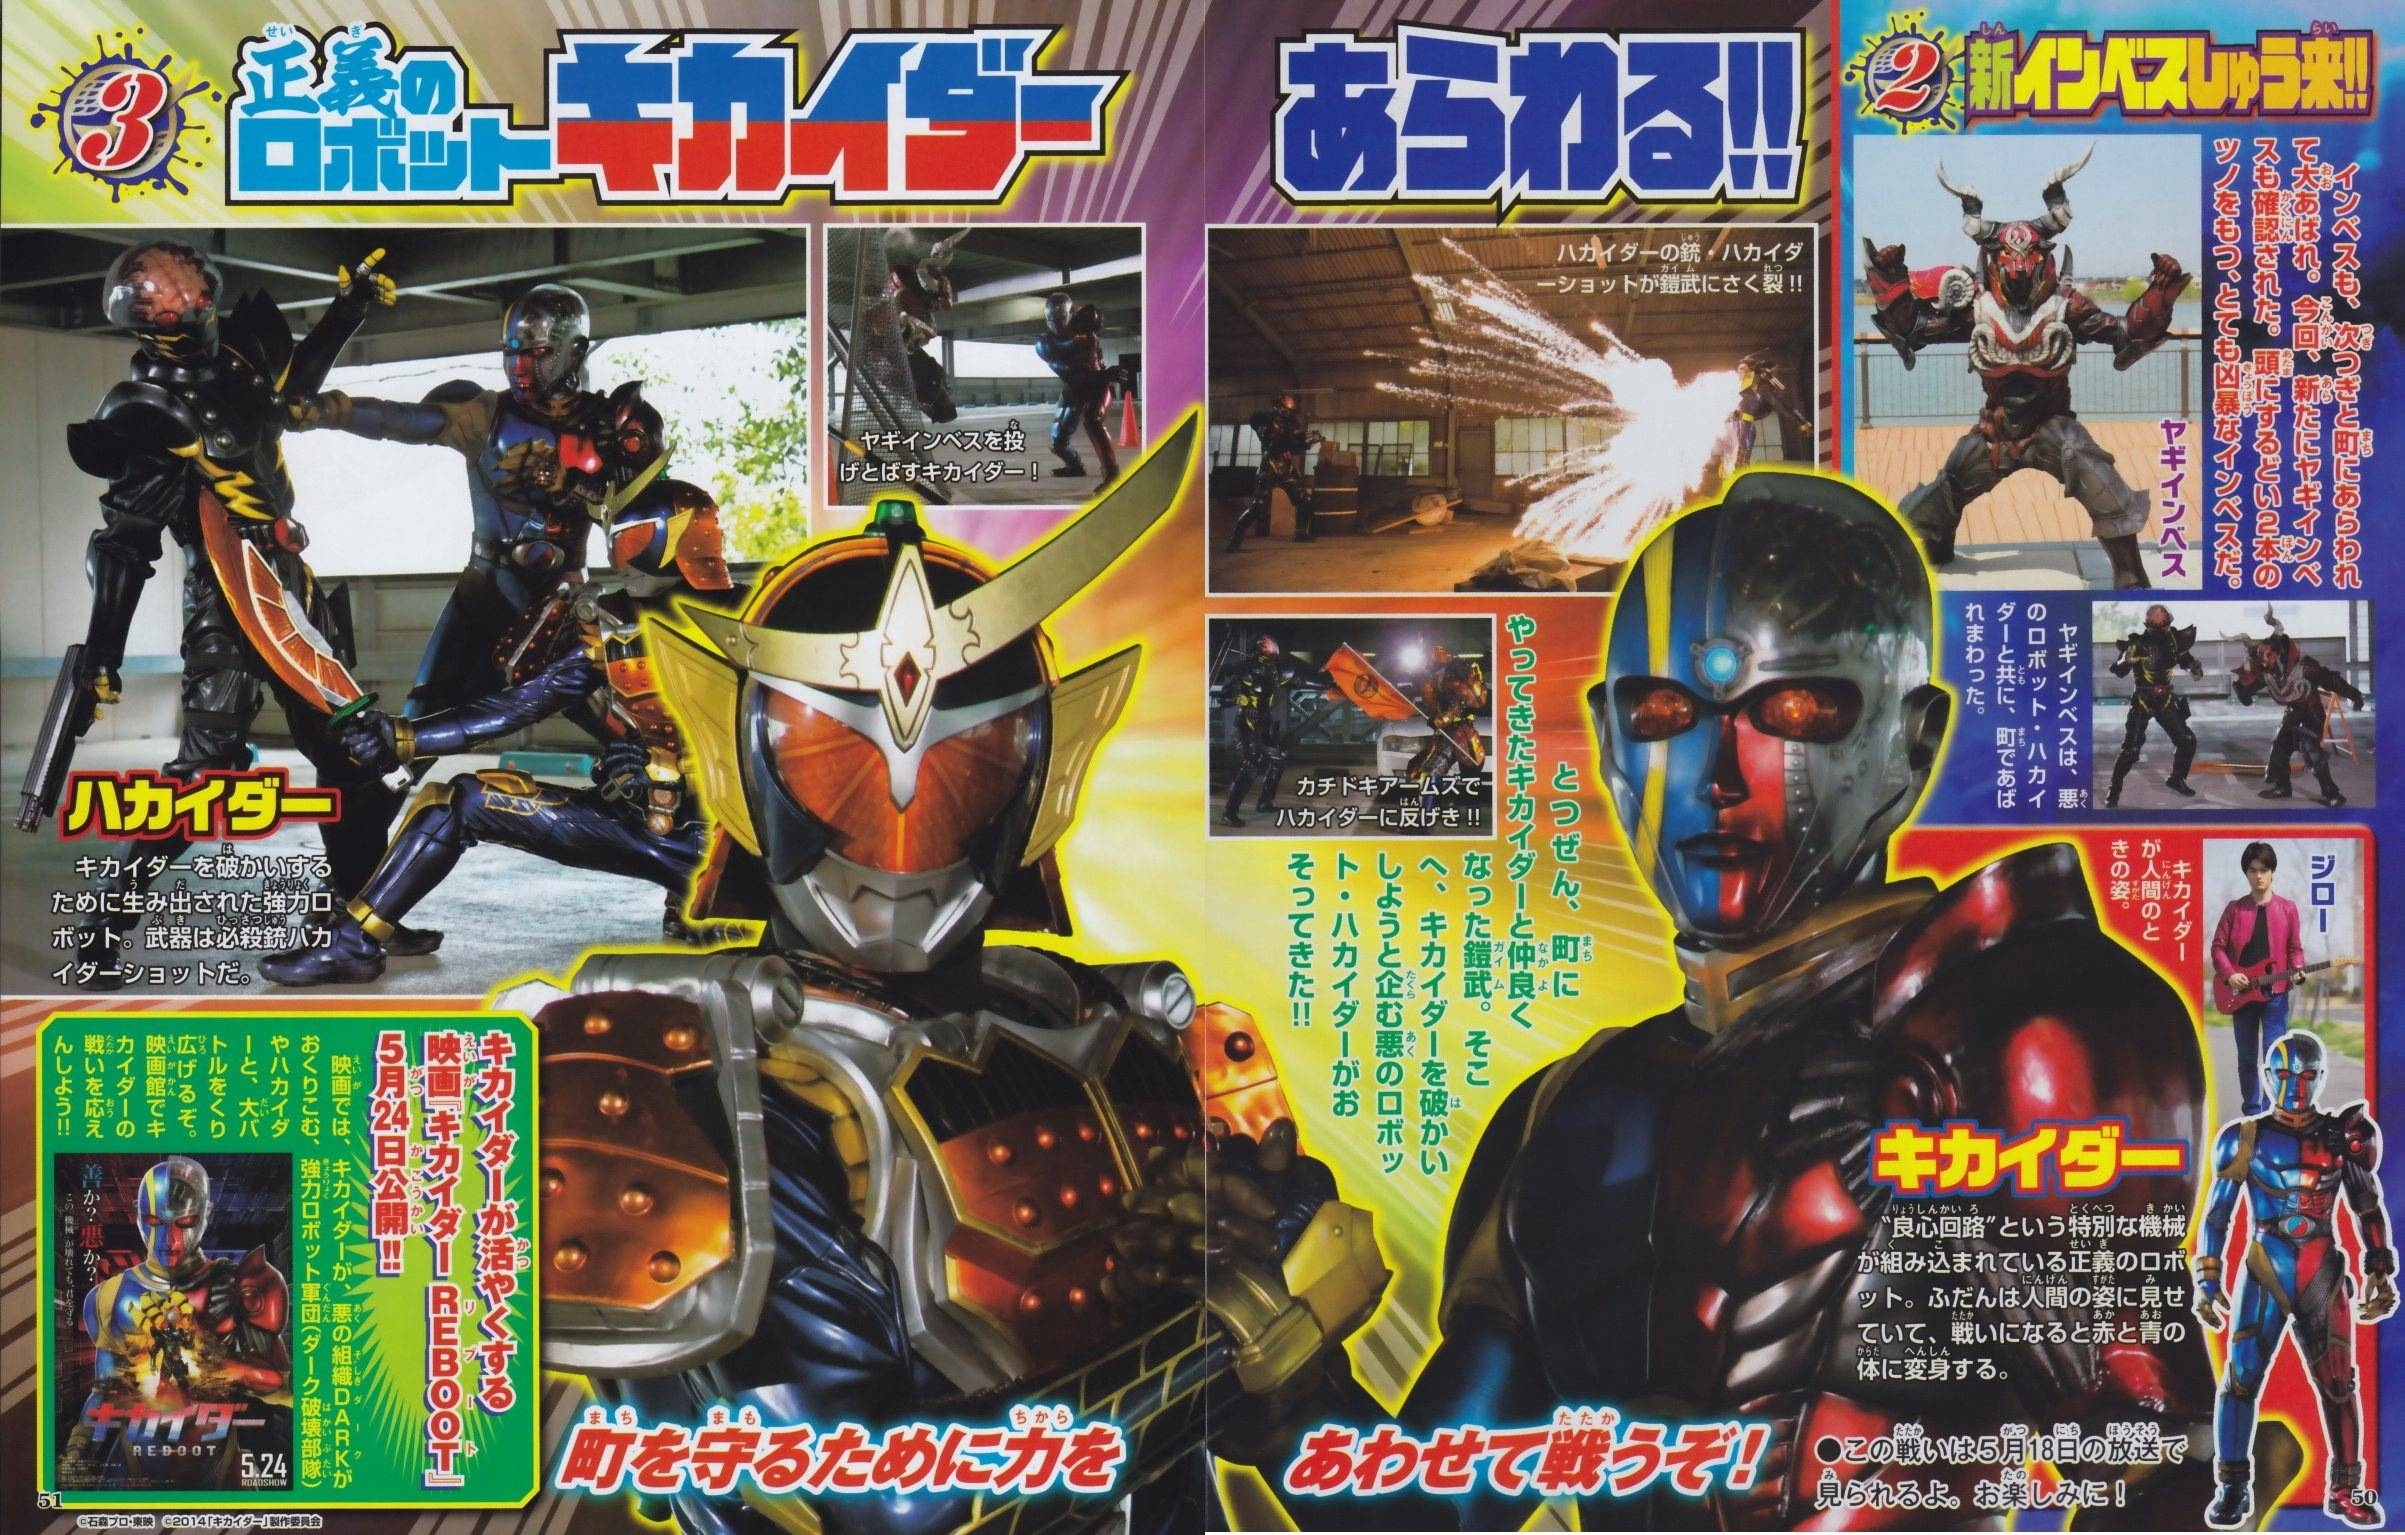 Kamen Rider Gaim and Kikaider Crossover Special Announced